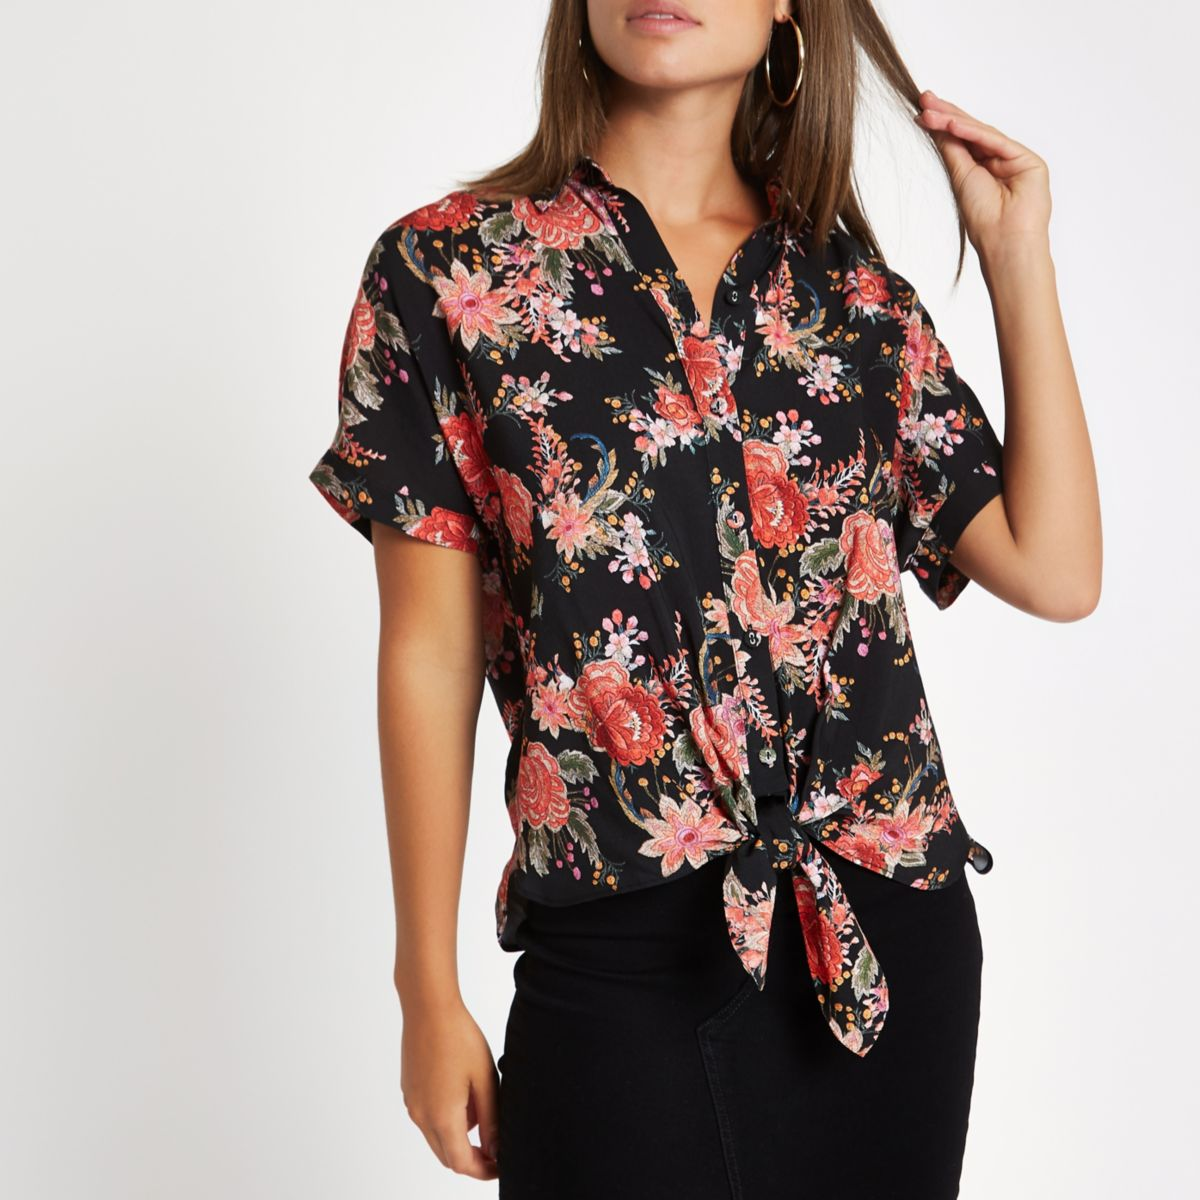 Black floral printed tie front shirt